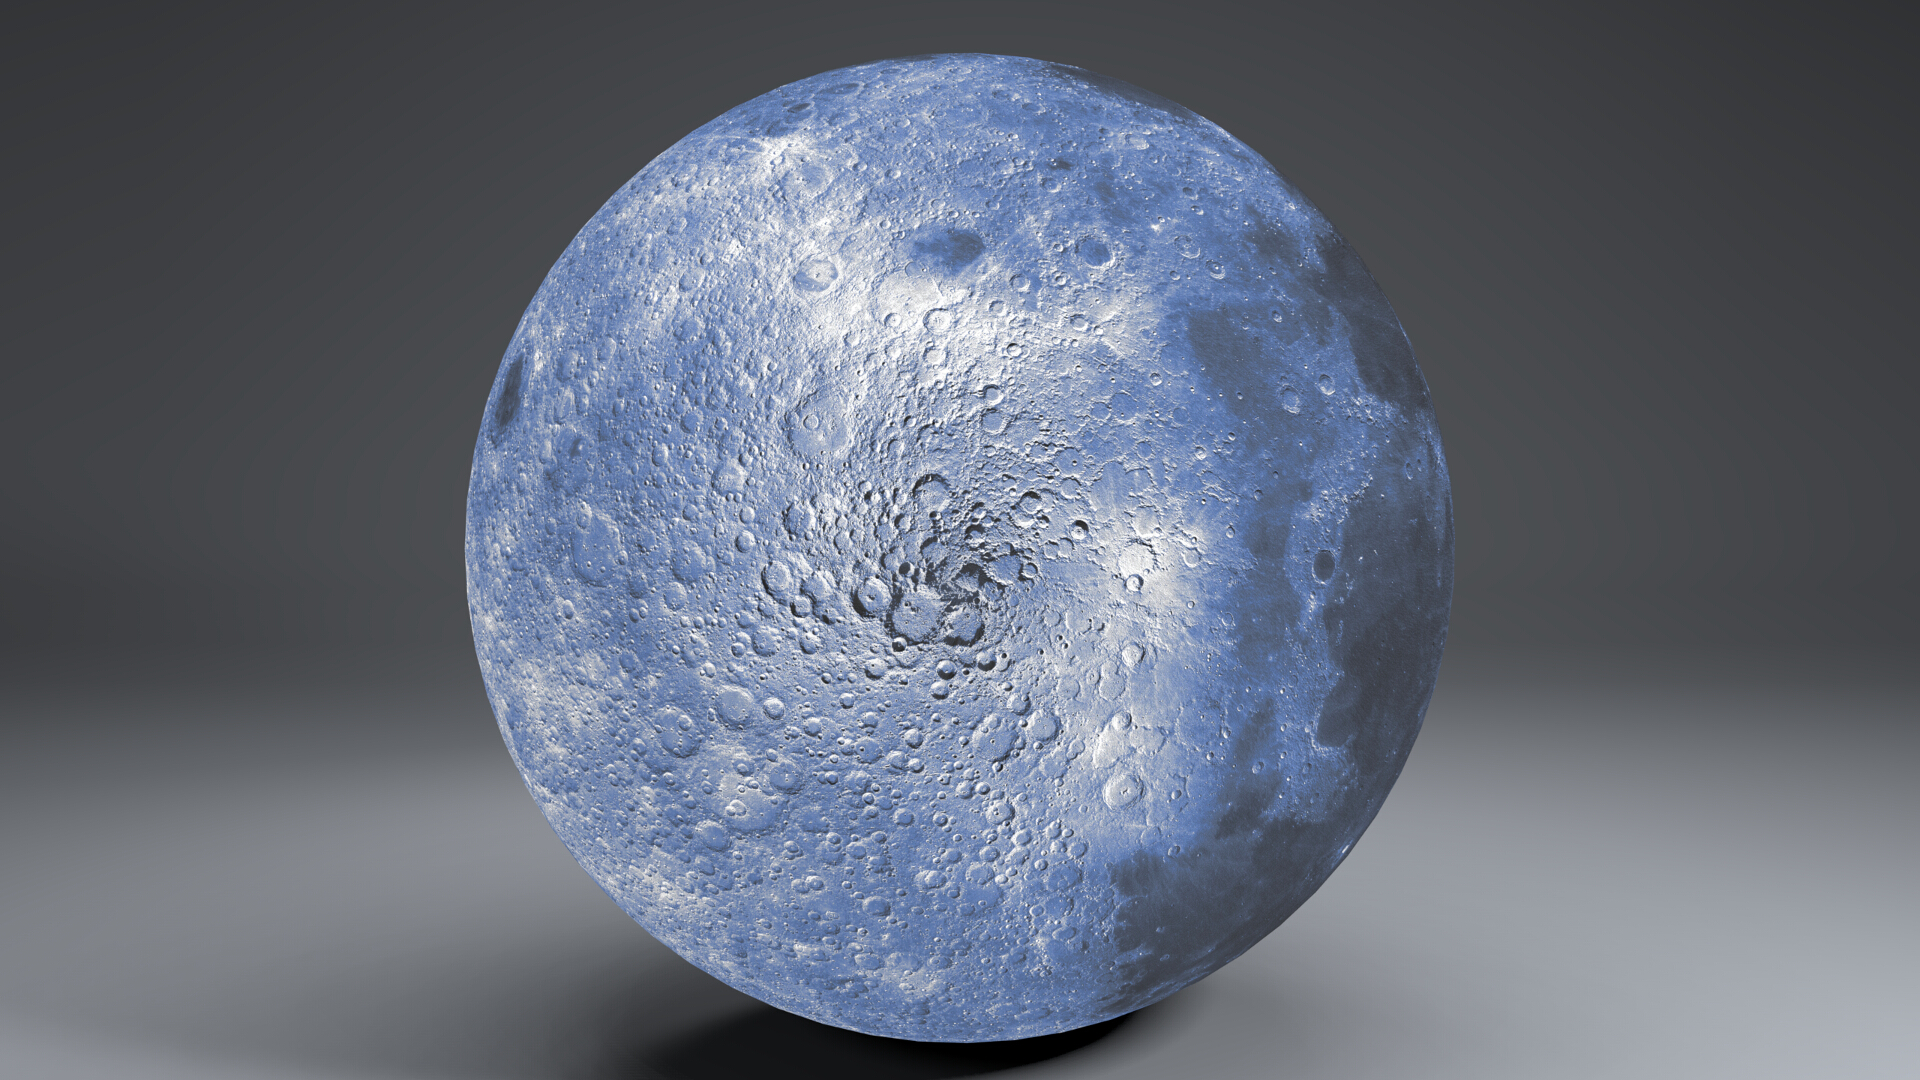 blue moonglobe 11k 3d model 3ds fbx blend dae obj 221892